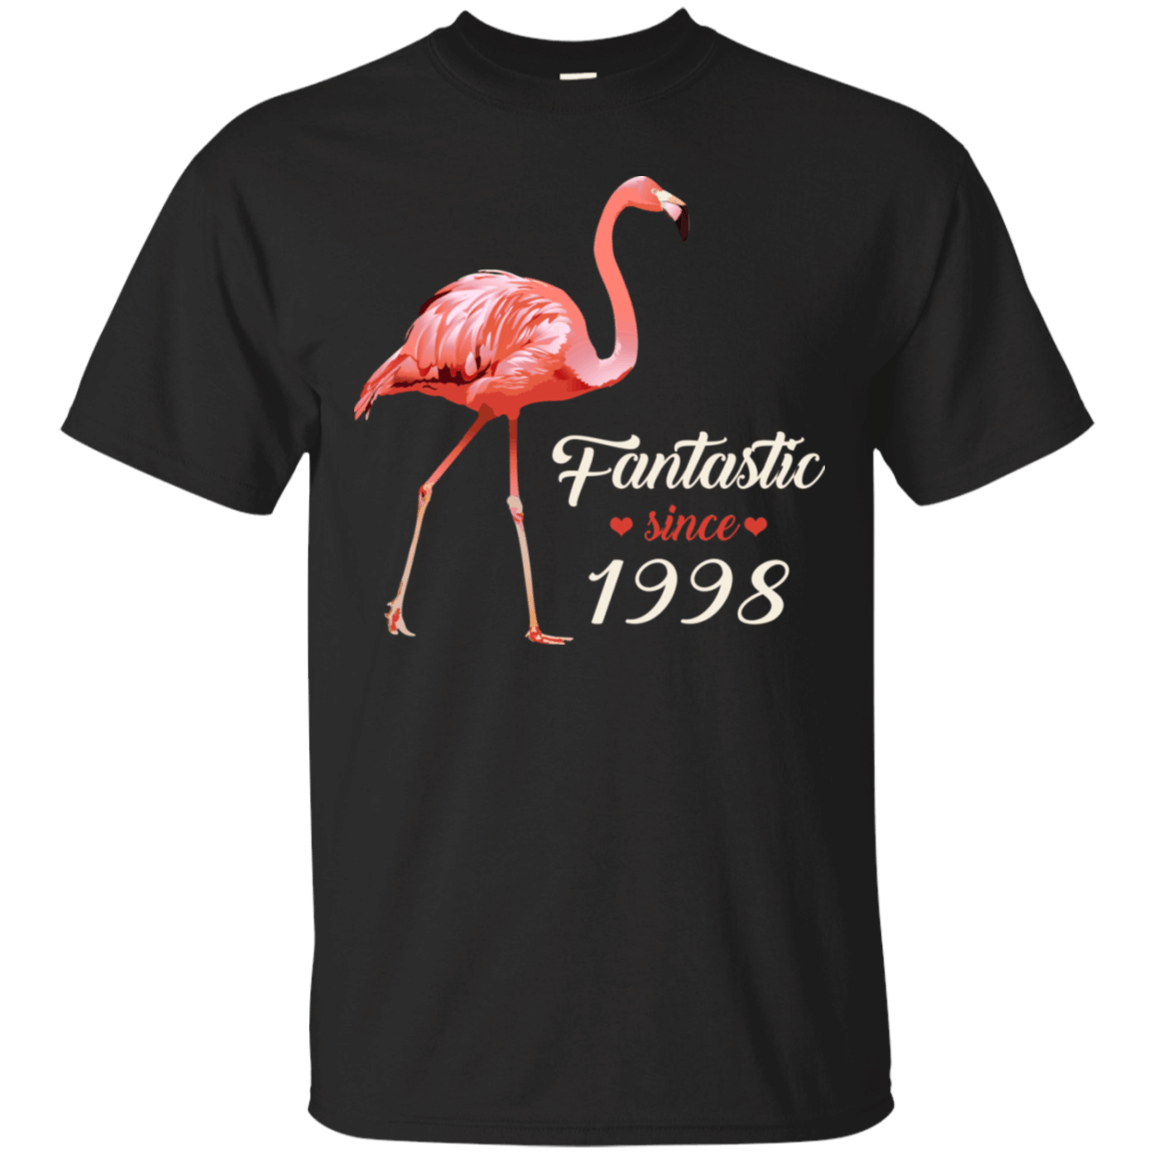 Pink Flamingo Fantastic Since 1998 Birthday Shirt HT01 Women 1998 Birthday Flamingo celebrate birthday, awesome since 1998, pink flamingo, flamingo lover, awesome and fabulous. Perfect gift for Birthday, anniversaries or any occasion. This product is made on demand Print And Ship From The USA